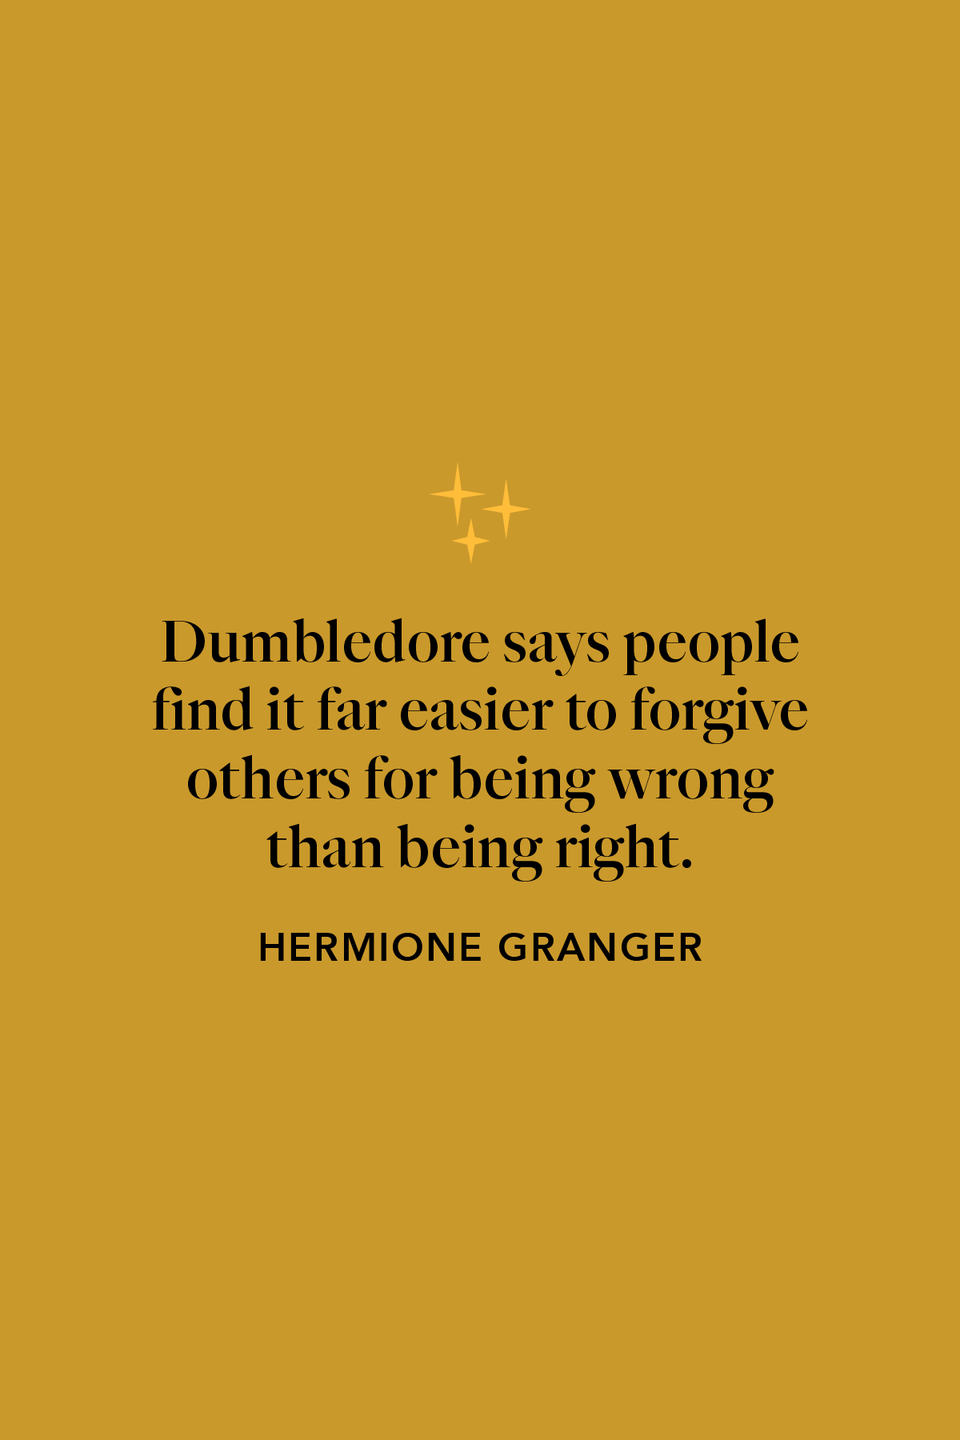 """<p>When speaking to Ron, Hermione recalls the professor's words of forgiveness in <em>The Half-Blood Prince</em>: """"Dumbledore says people find it far easier to forgive others for being wrong than being right."""" </p>"""